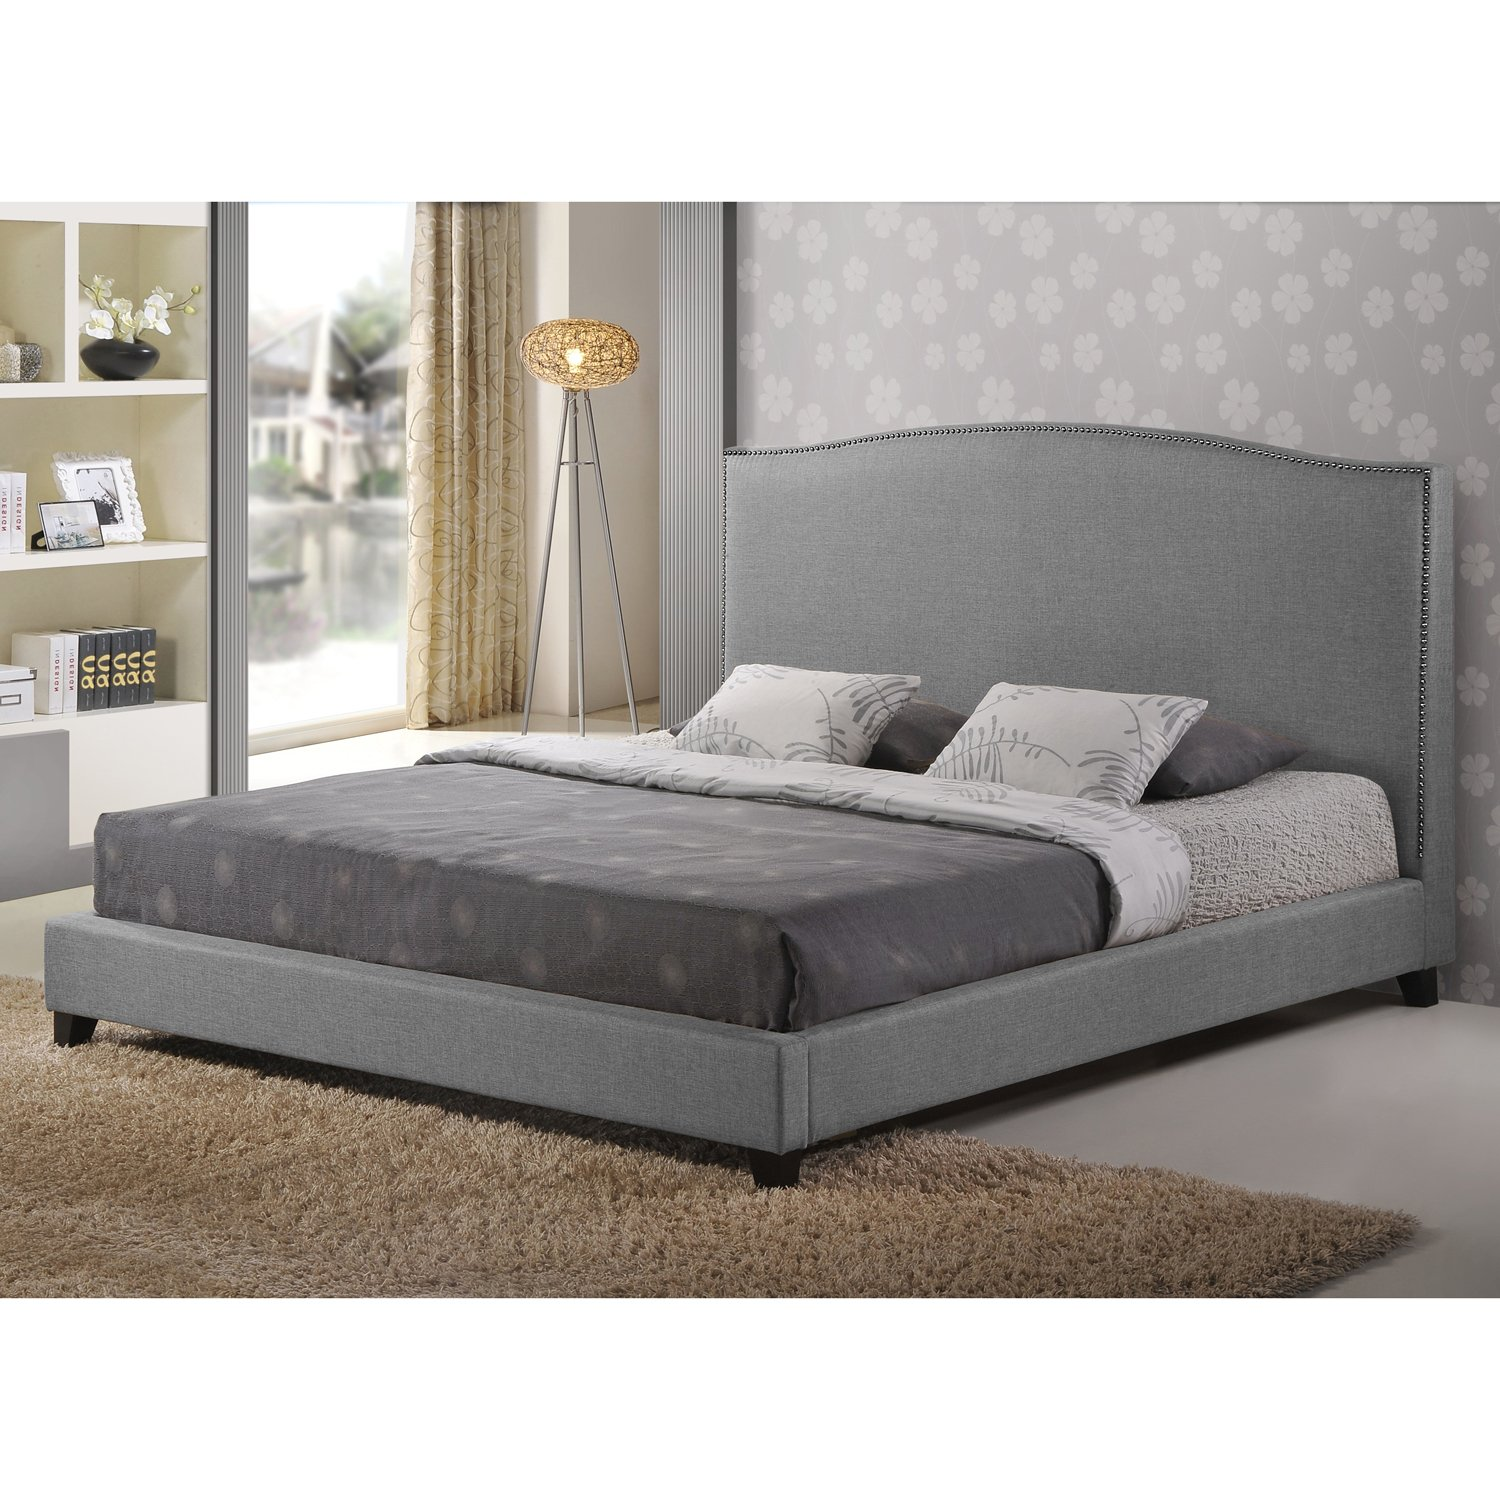 amazoncom baxton studio aisling fabric platform bed queen gray  - amazoncom baxton studio aisling fabric platform bed queen gray kitchen dining